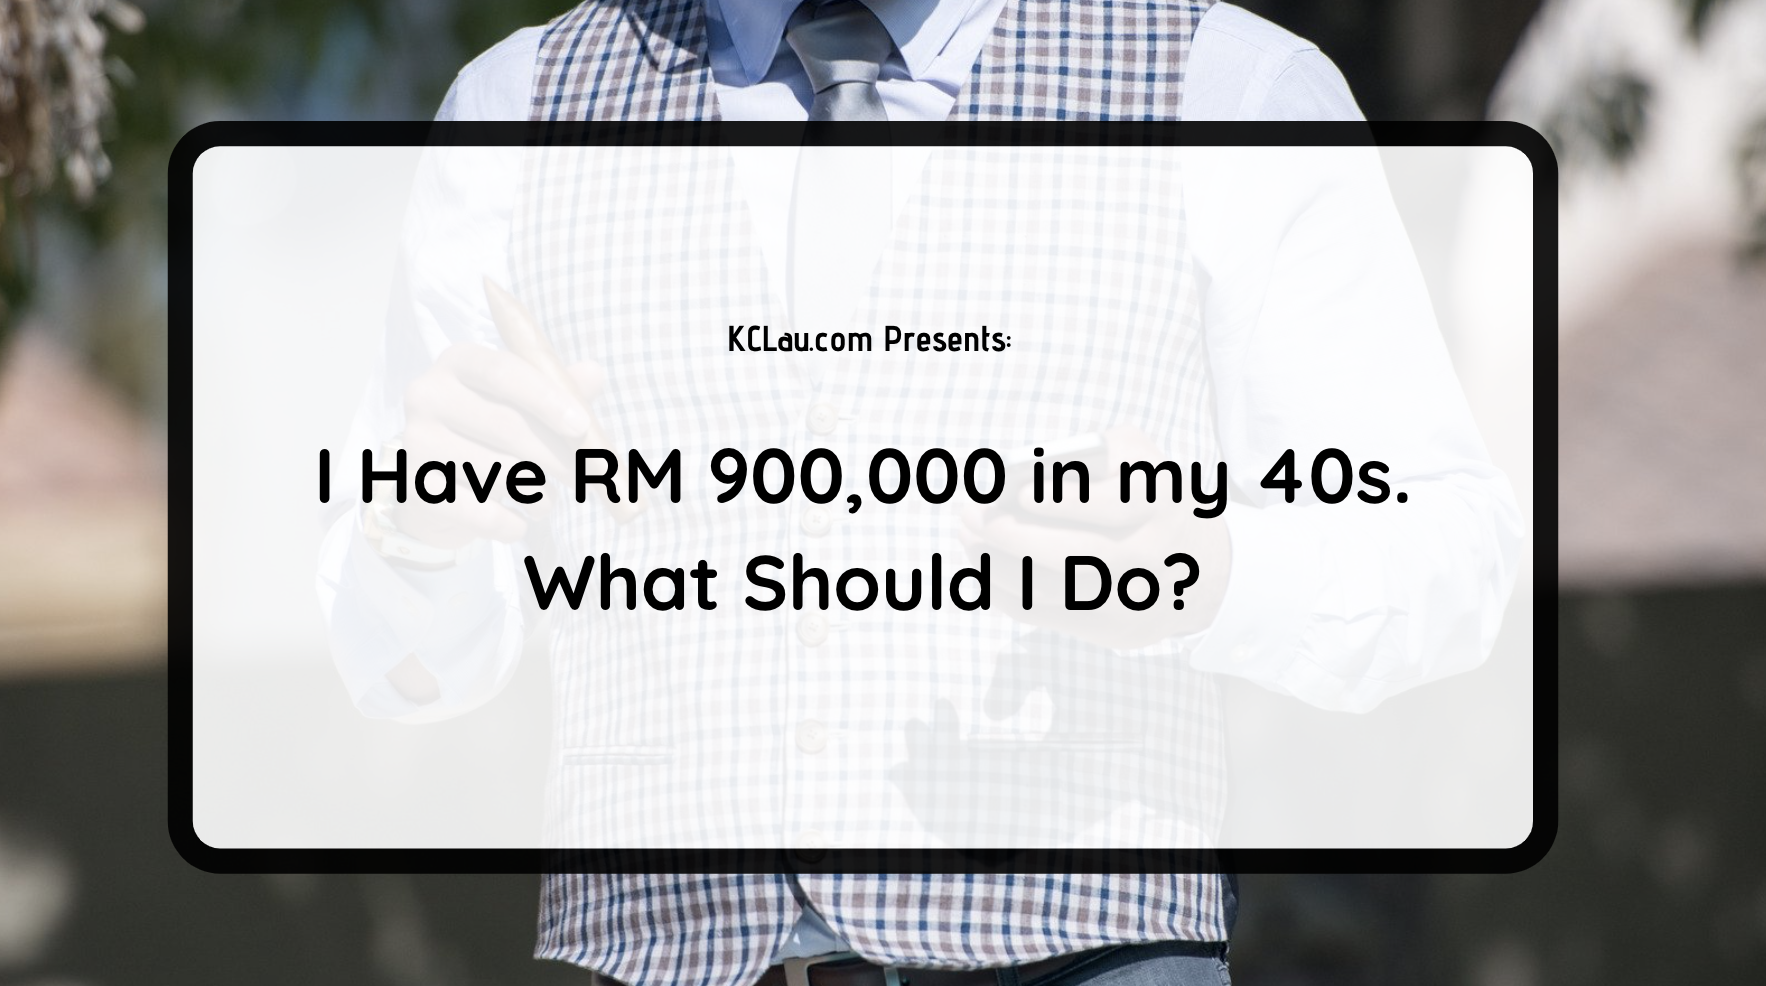 I Have RM 900,000 in my 40s. What Should I Do?